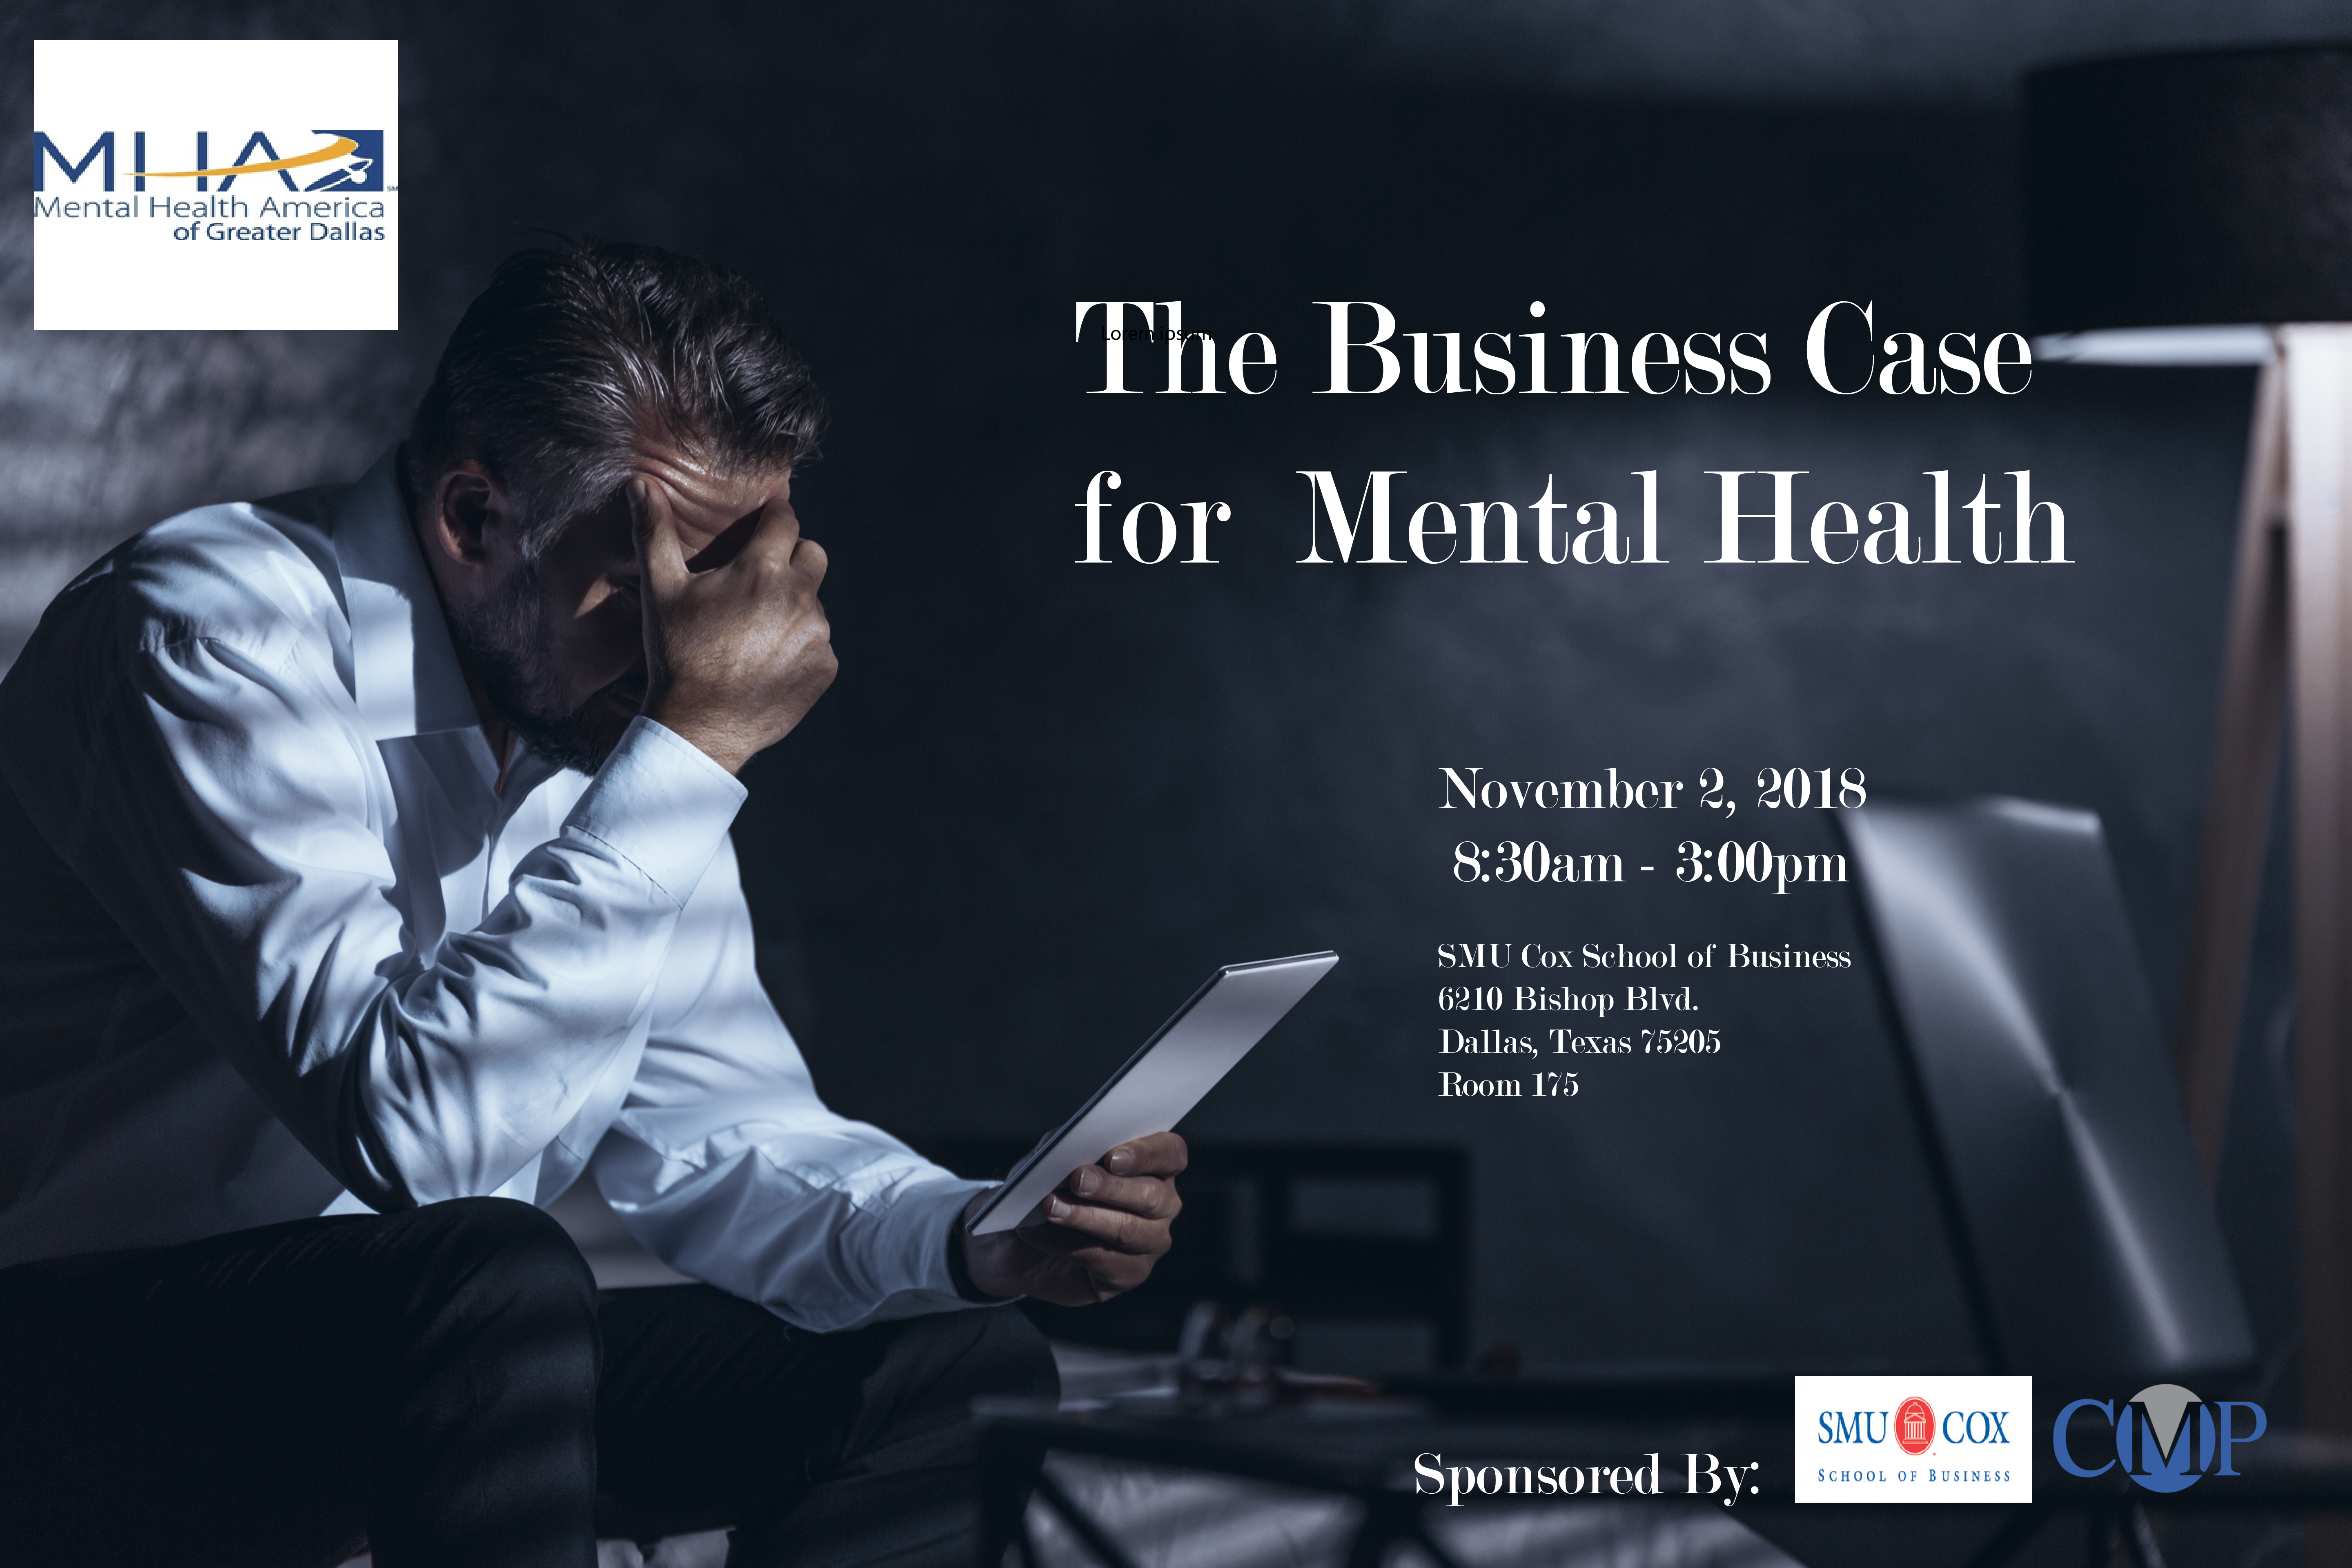 MHA _ The Business Case for Mental Health